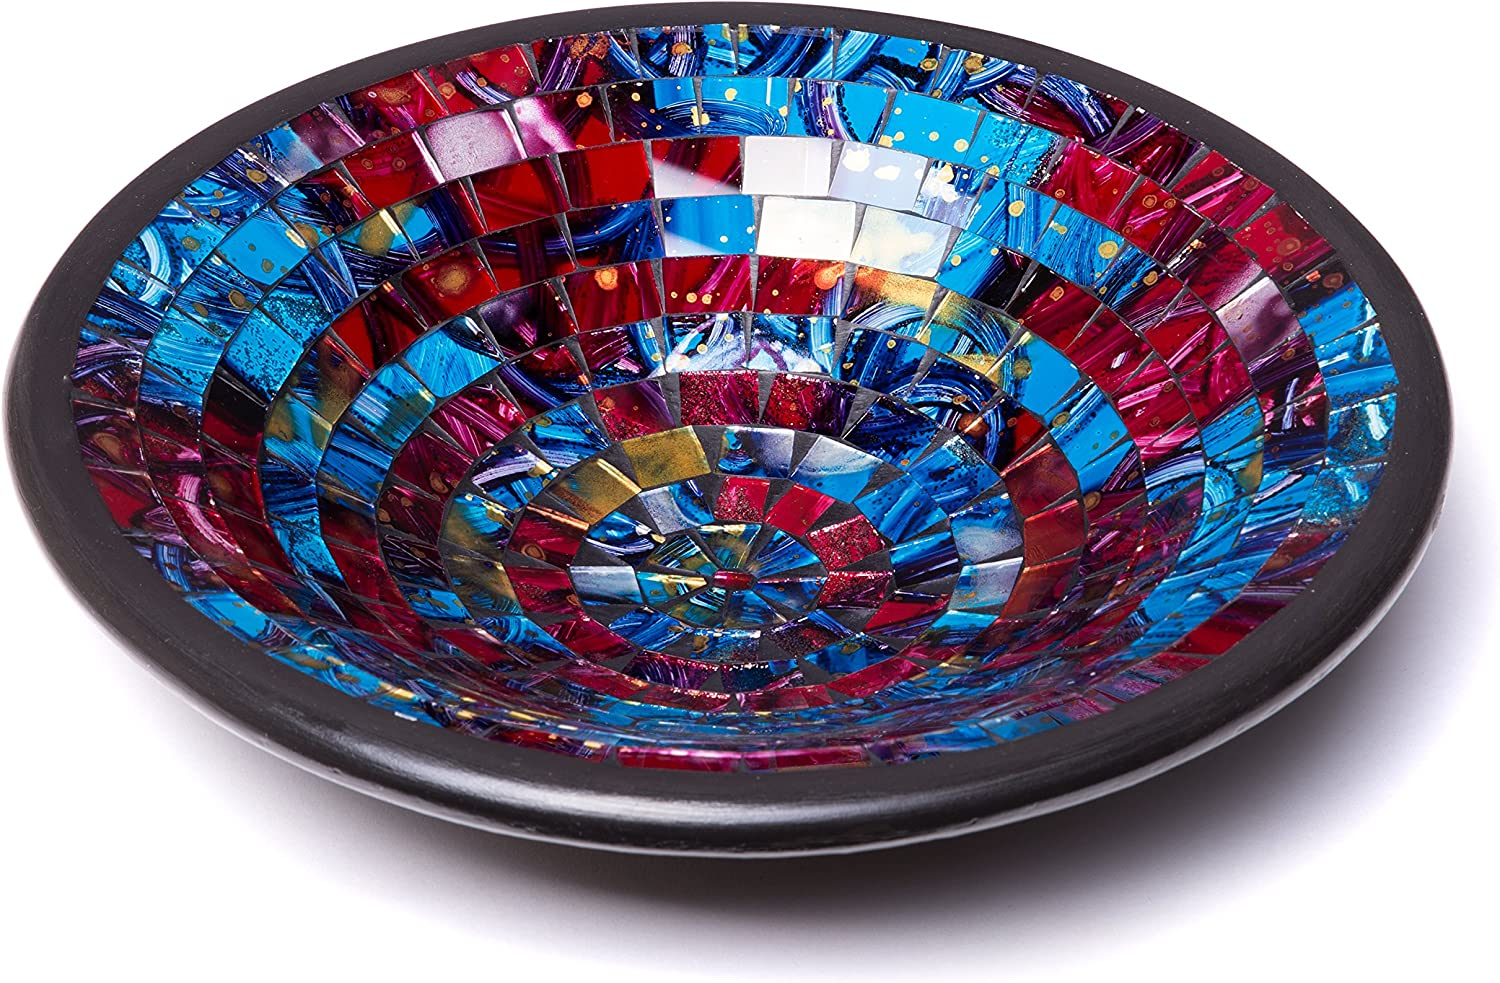 11 Large Modern Style in Green /& Orange Colors for Living Room Glass Mosaic Round Accent Plate Platter Decorative Catch-All Tray Dish Centerpiece Bowl Hallway Console Side Table Decor Bedroom